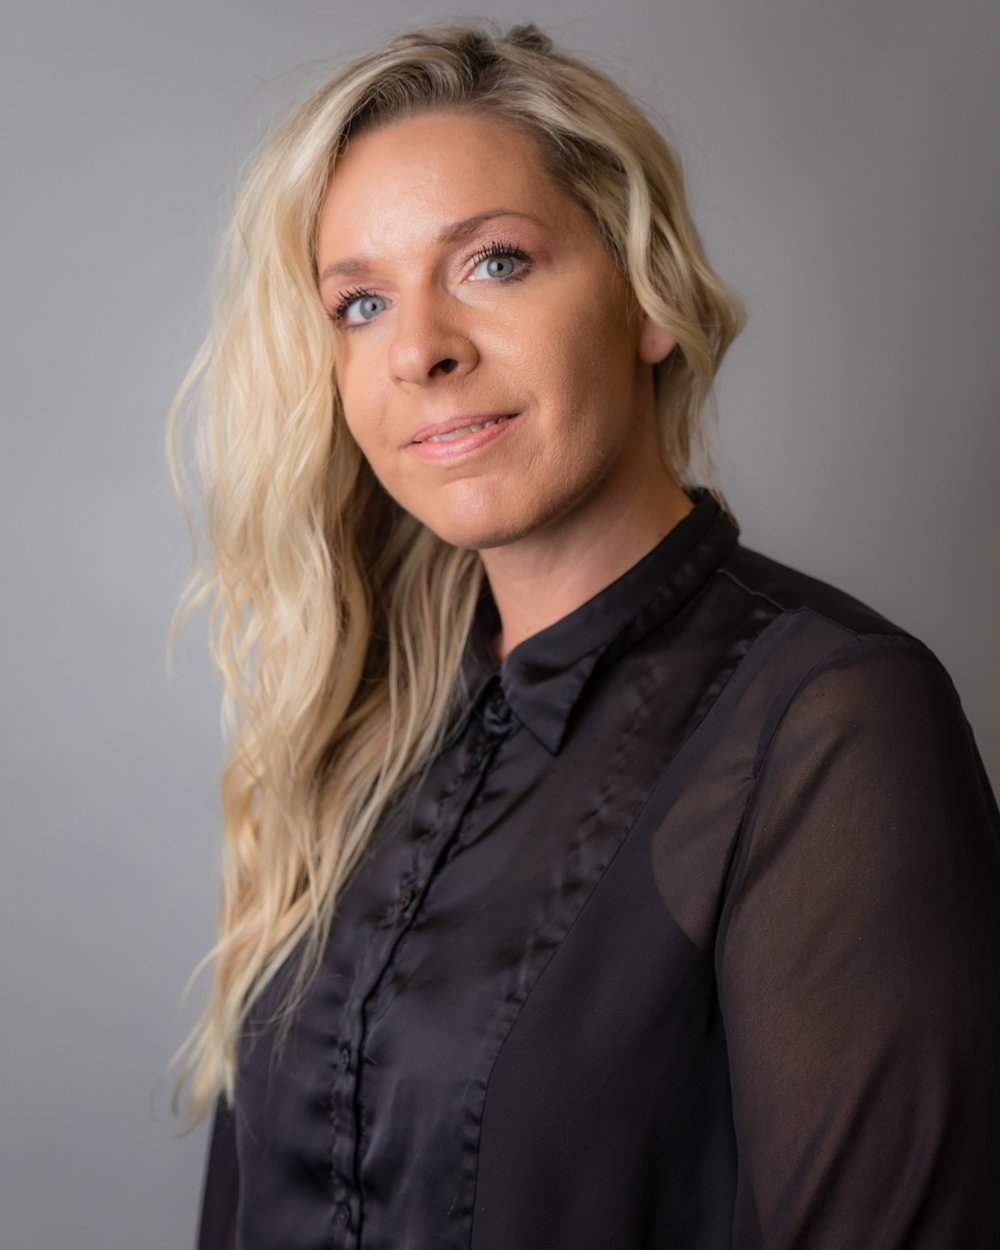 Kelly Gillis - @hairbykellygillisSince 2006Recent TrainingGoldwell: Robert Brown - Fierce Formulations & @PURE PIGMENTSGoldwell Academy NYCGoldwell: Formulation, Blondes & Highlights, Corrective WorkRedken NYCColoring & Cutting with Lauren Hagen